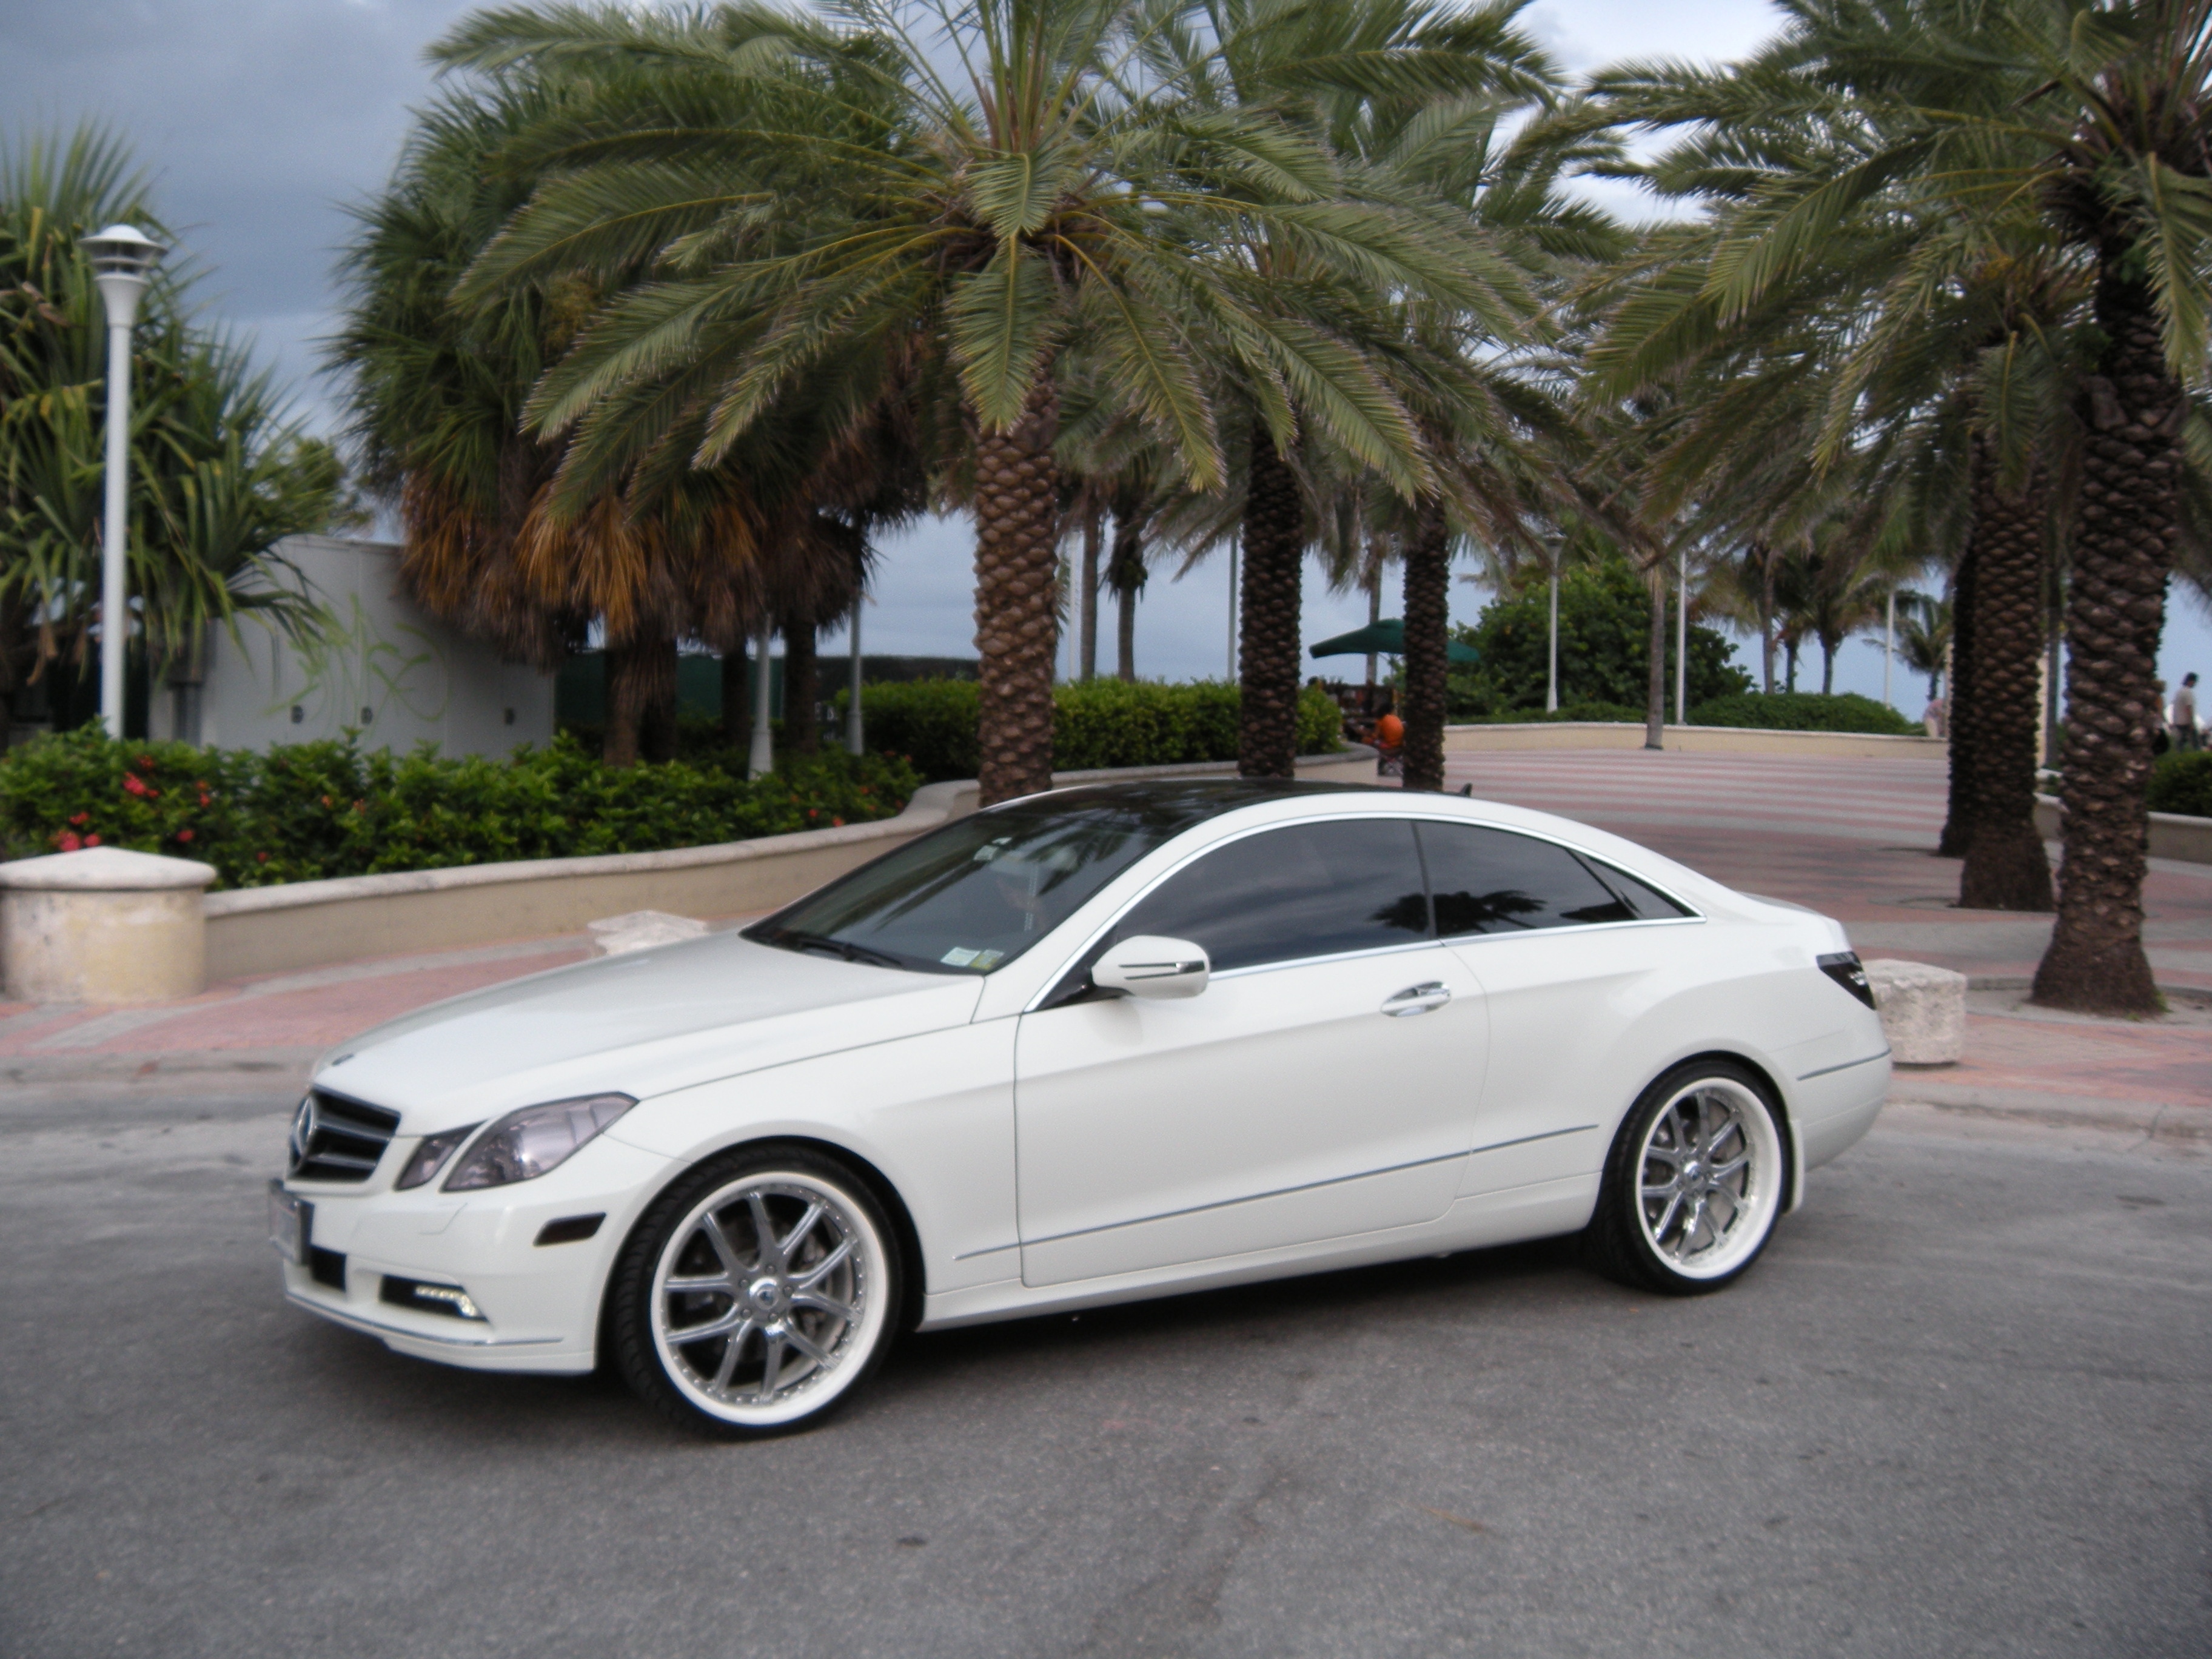 YoUnG_MoNeY_BX 2010 Mercedes-Benz E-Class 13358753